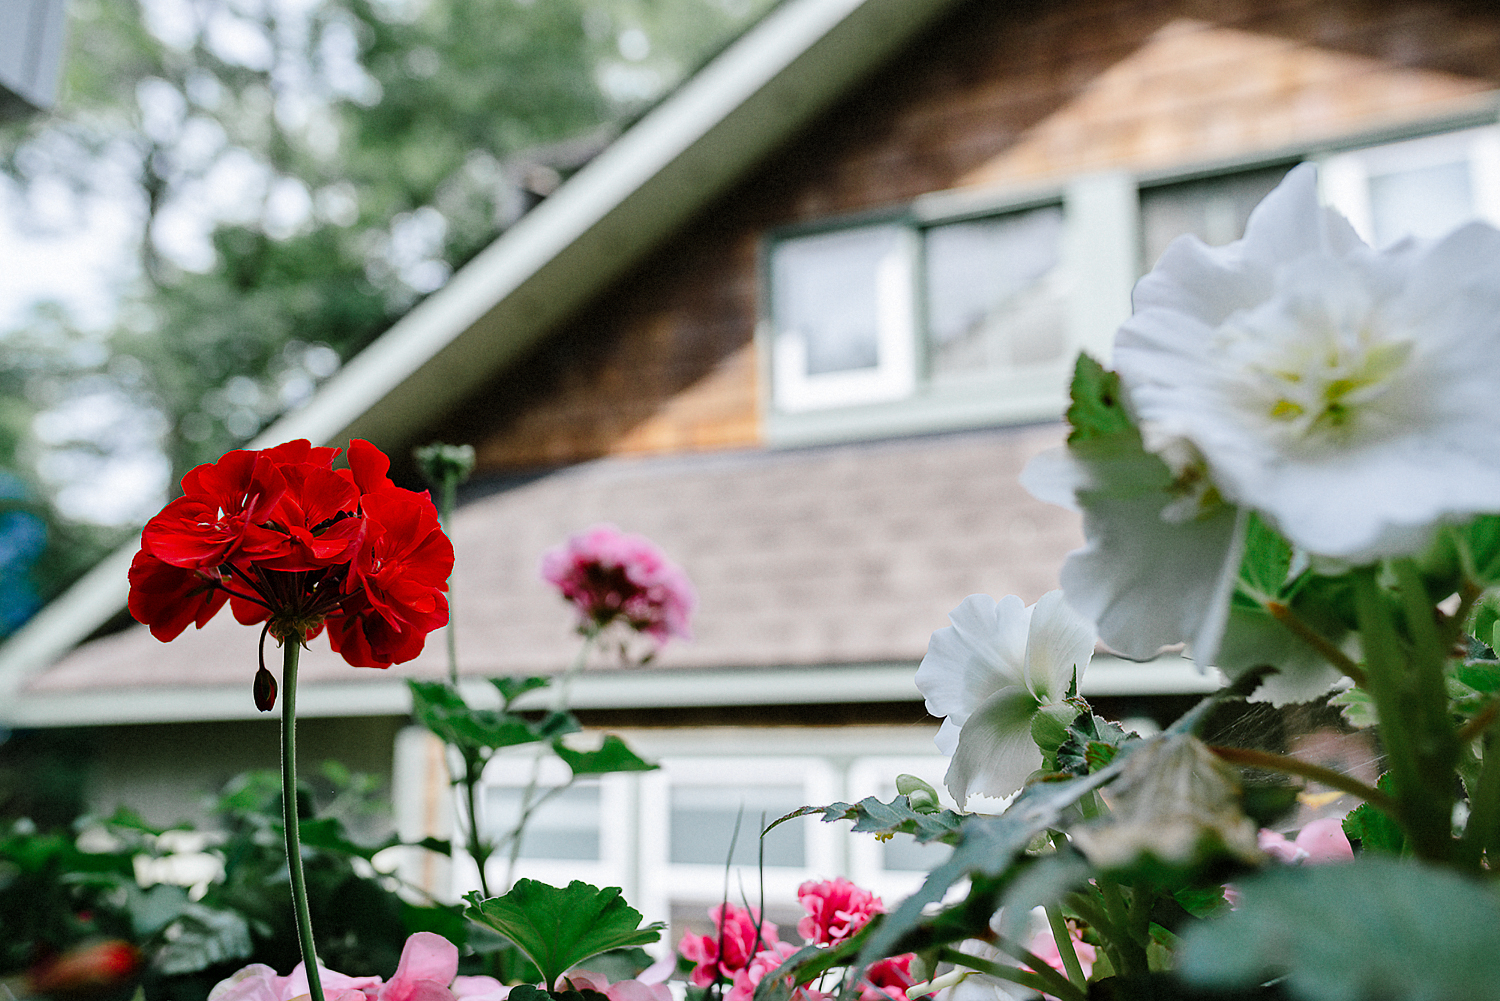 Best-Wedding-Photographers-Toronto-with-a-documentary-photojournalistic-approach-and-style-Toronto-Island-Cafe-Clubhouse-Wedding-Photography-Hip-Cool-Bride-and-Groom-Islaand-Clubhouse-Ceremony-Vintage-Spider-Flower-Red-Palette.jpg